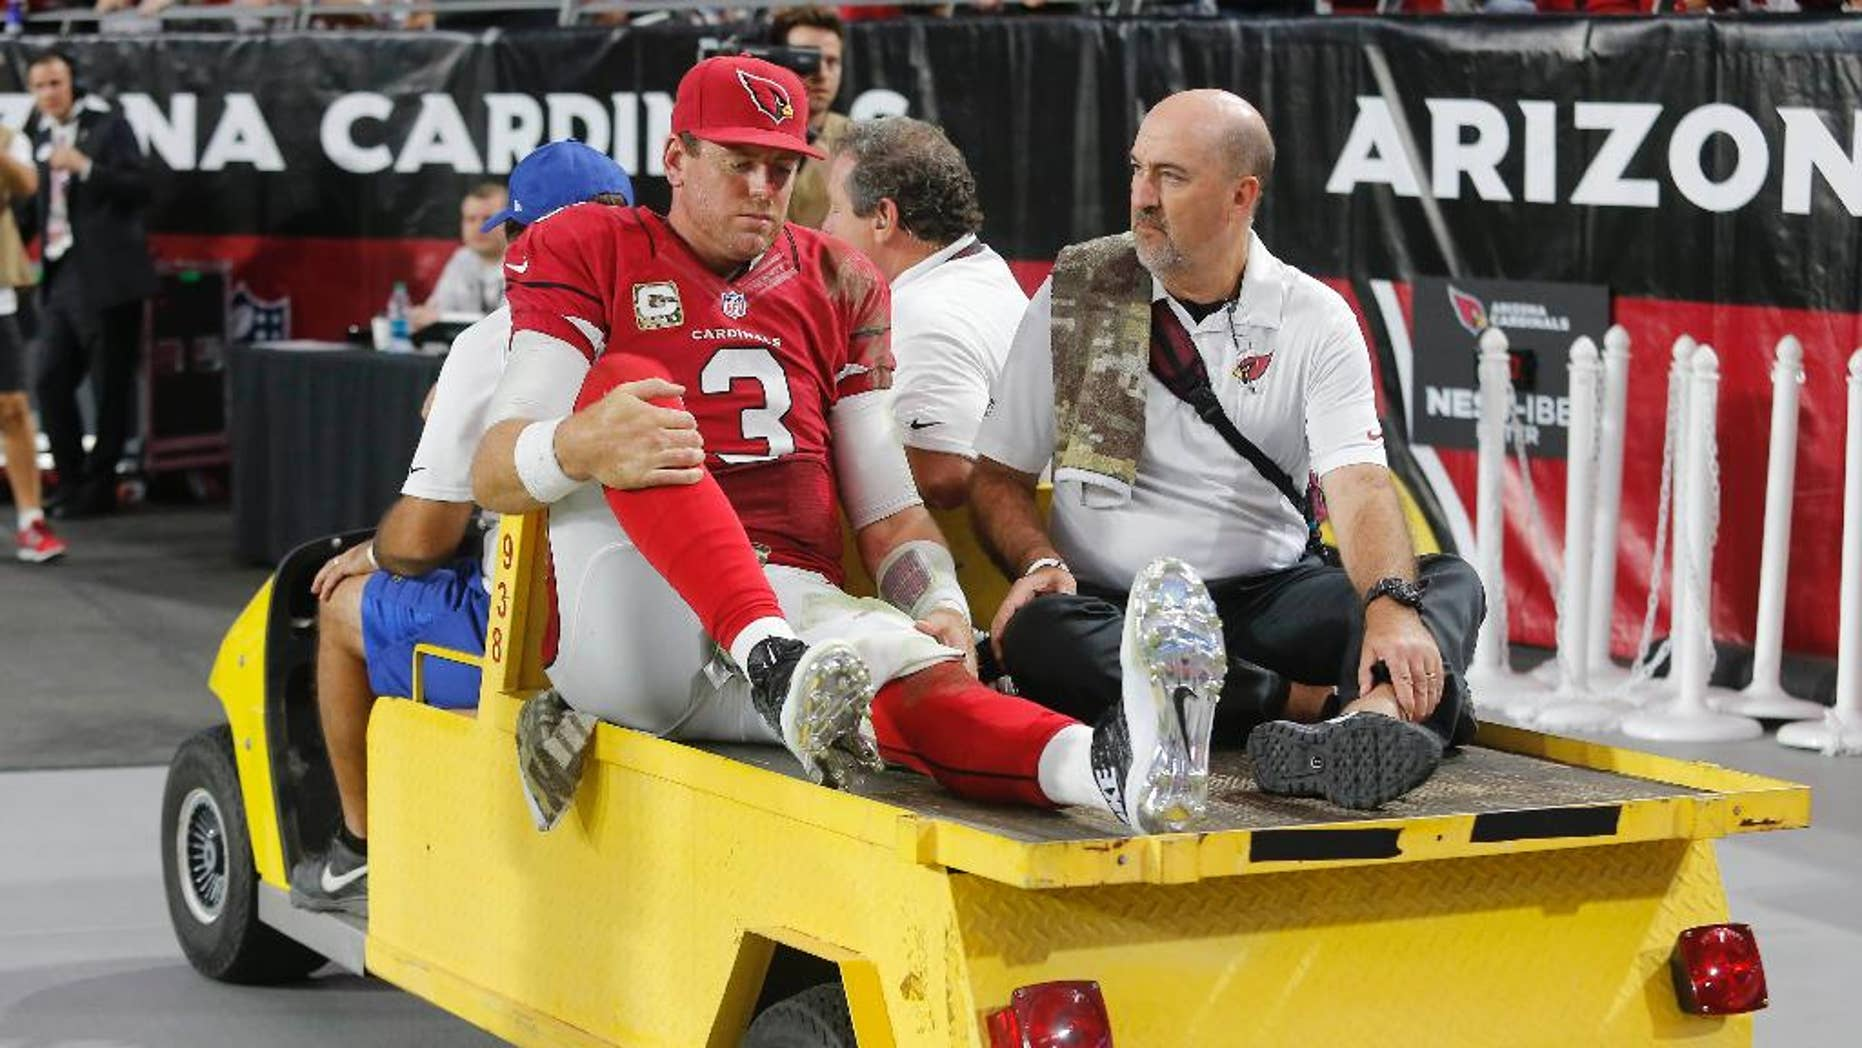 Arizona Cardinals quarterback Carson Palmer (3) leaves the NFL football game against the St. Louis Rams after an injury during the second half, Sunday, Nov. 9, 2014, in Glendale, Ariz. (AP Photo/Rick Scuteri)